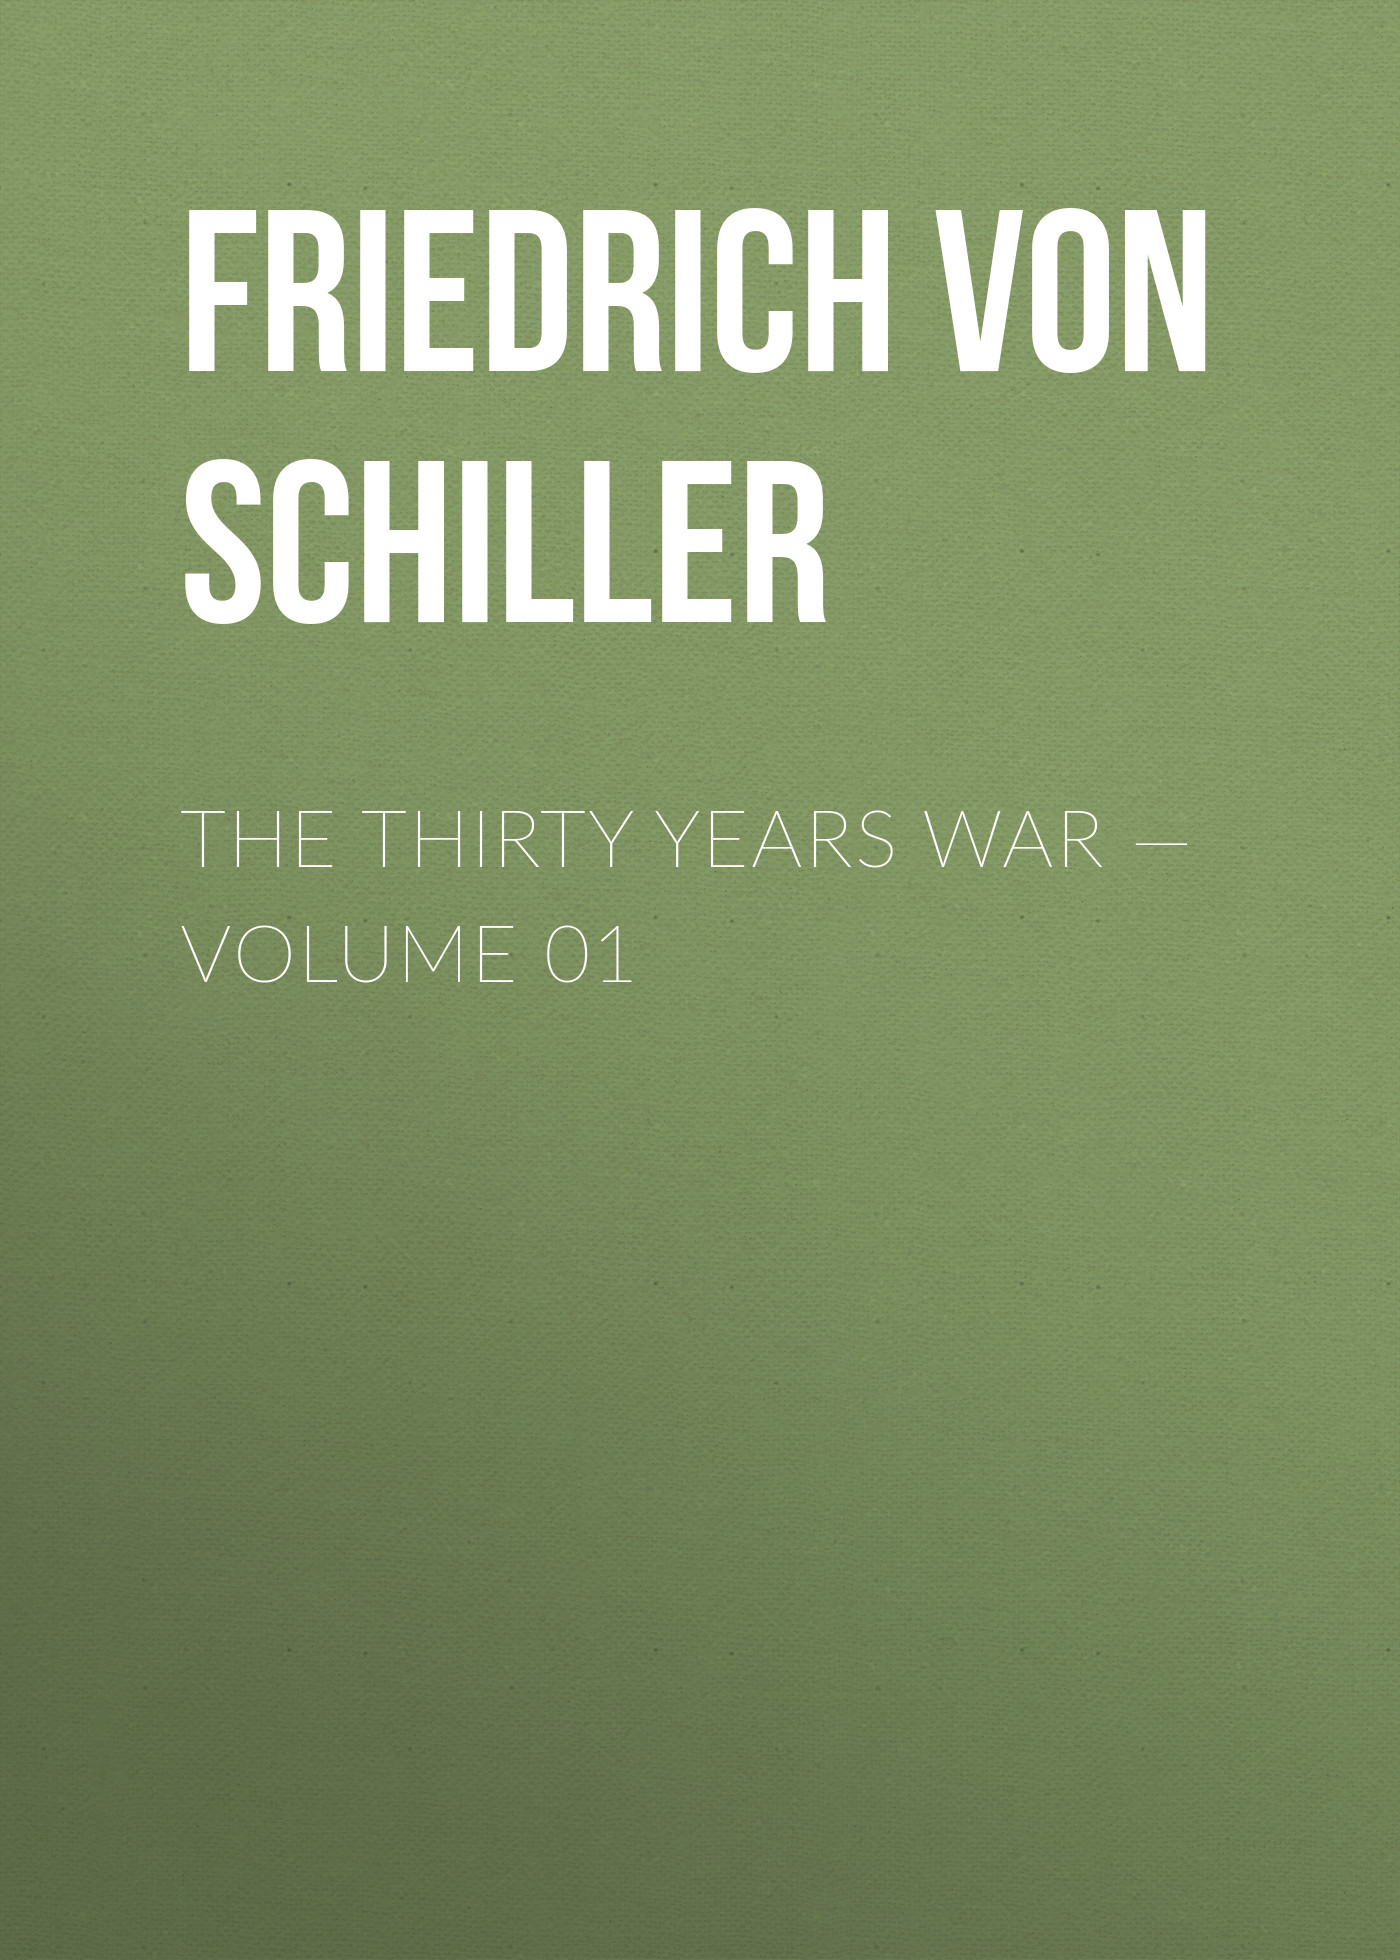 лучшая цена Friedrich von Schiller The Thirty Years War — Volume 01